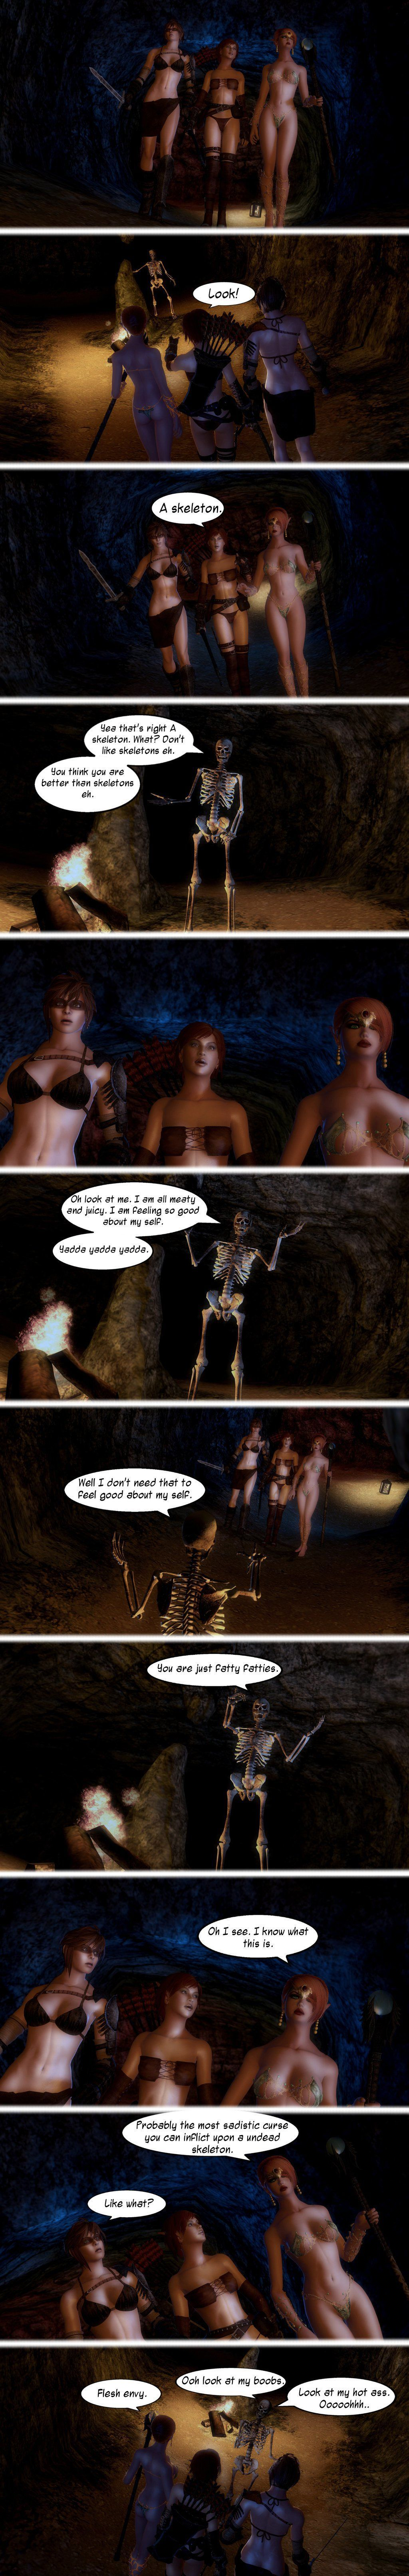 Updated gallery of the works of Rastifan Pt 2 (Comic Shorts) - part 9